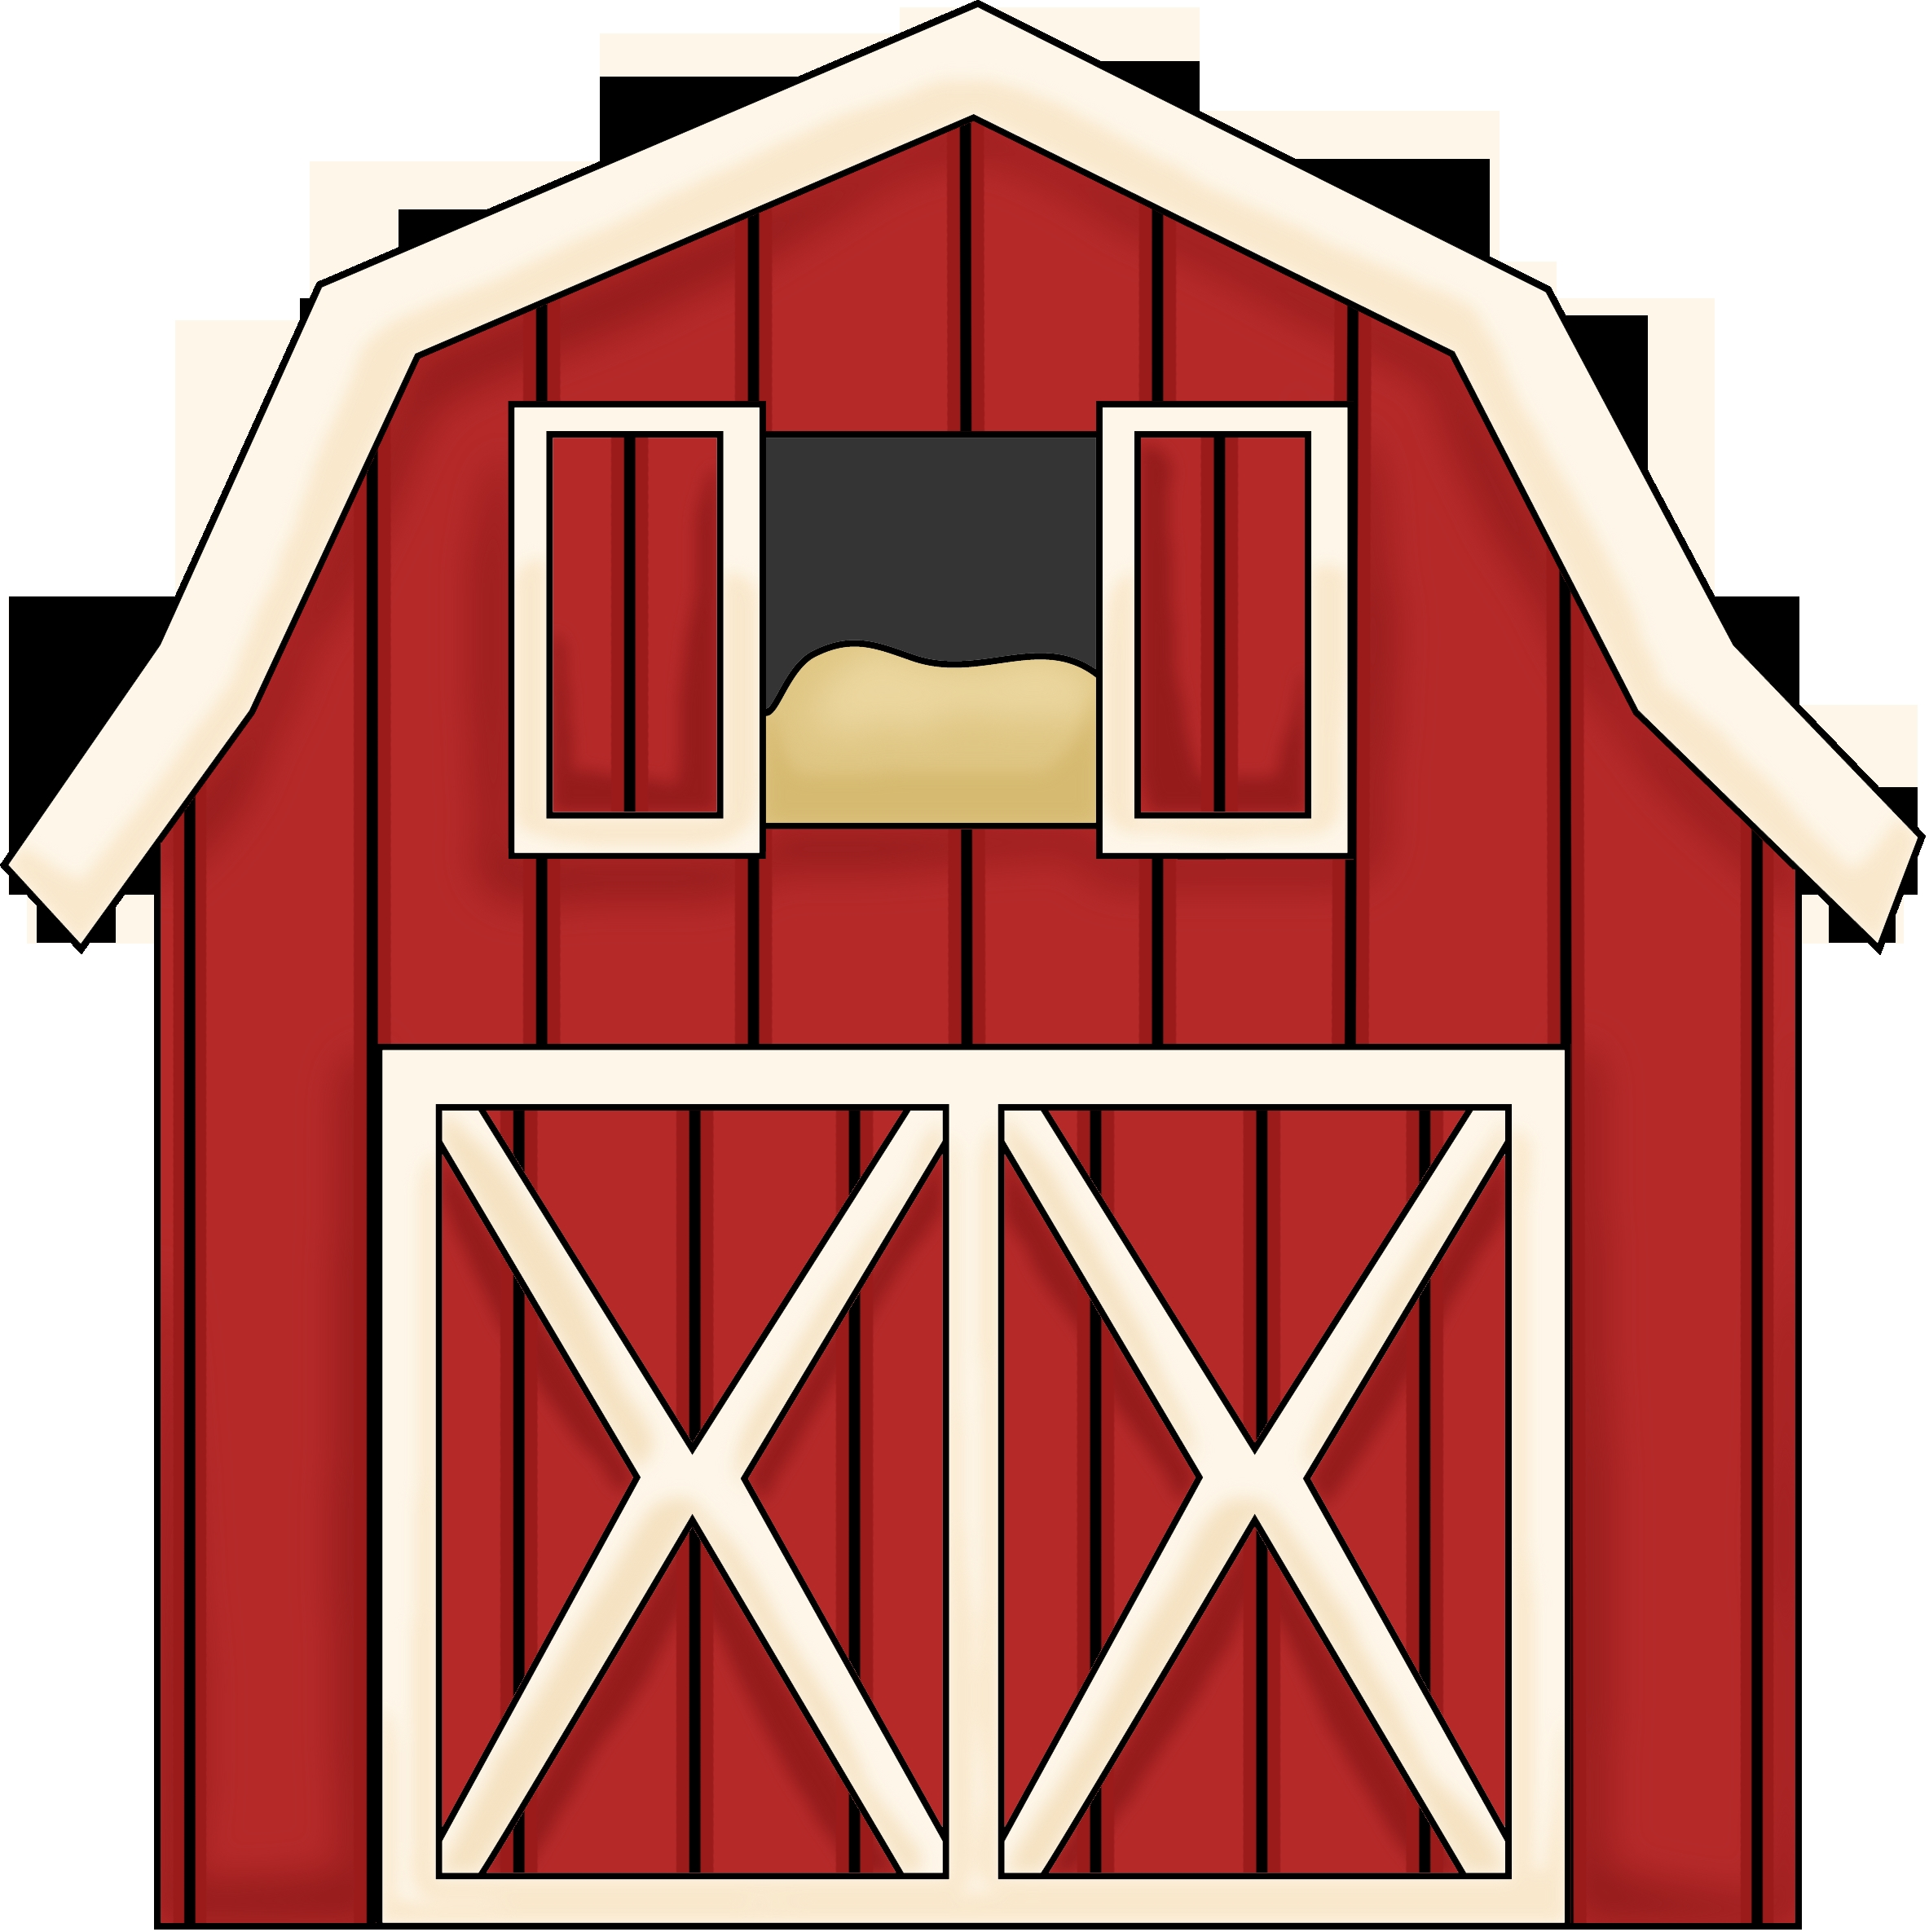 New gallery digital collection. Barn clipart basic